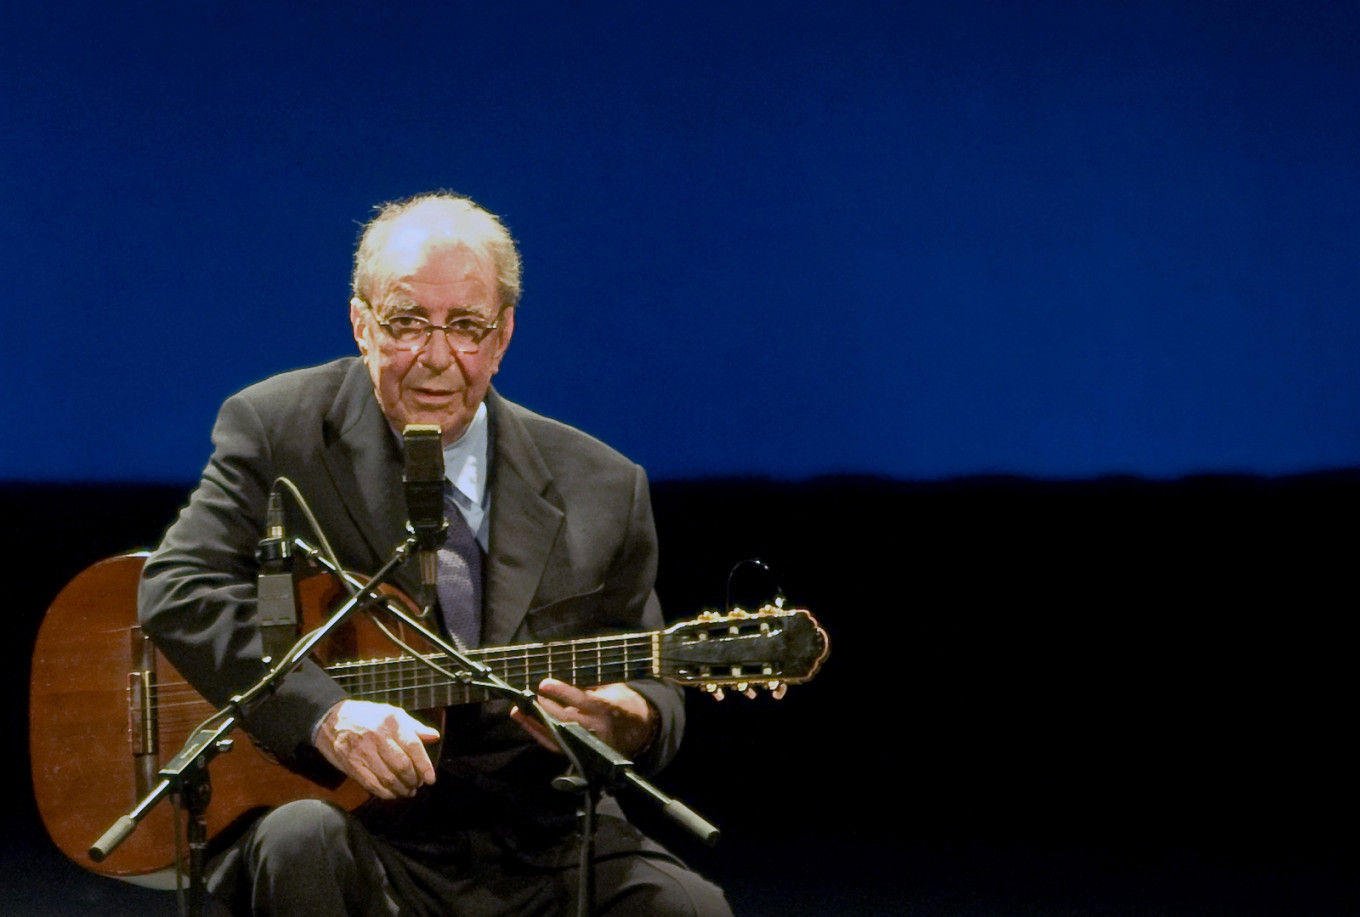 João Gilberto: Brazilian 'father of bossa nova' dies aged 88